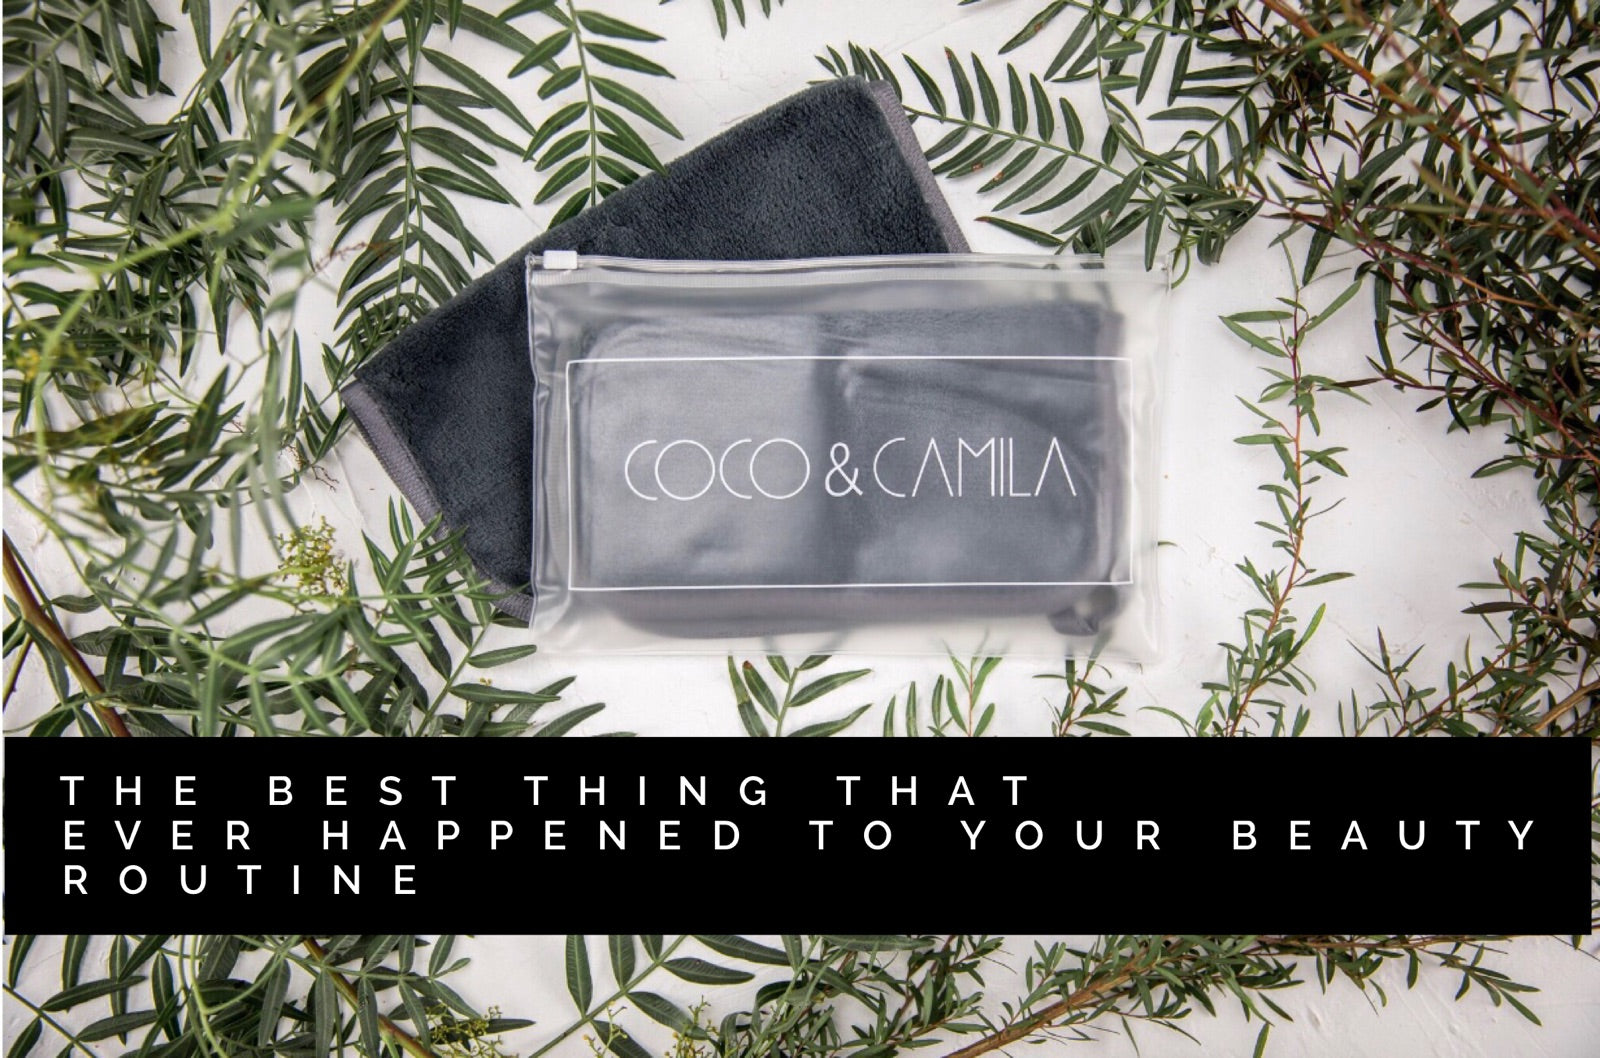 What is the Coco & Camila cloth and why it should be an essential part of your beauty routine?